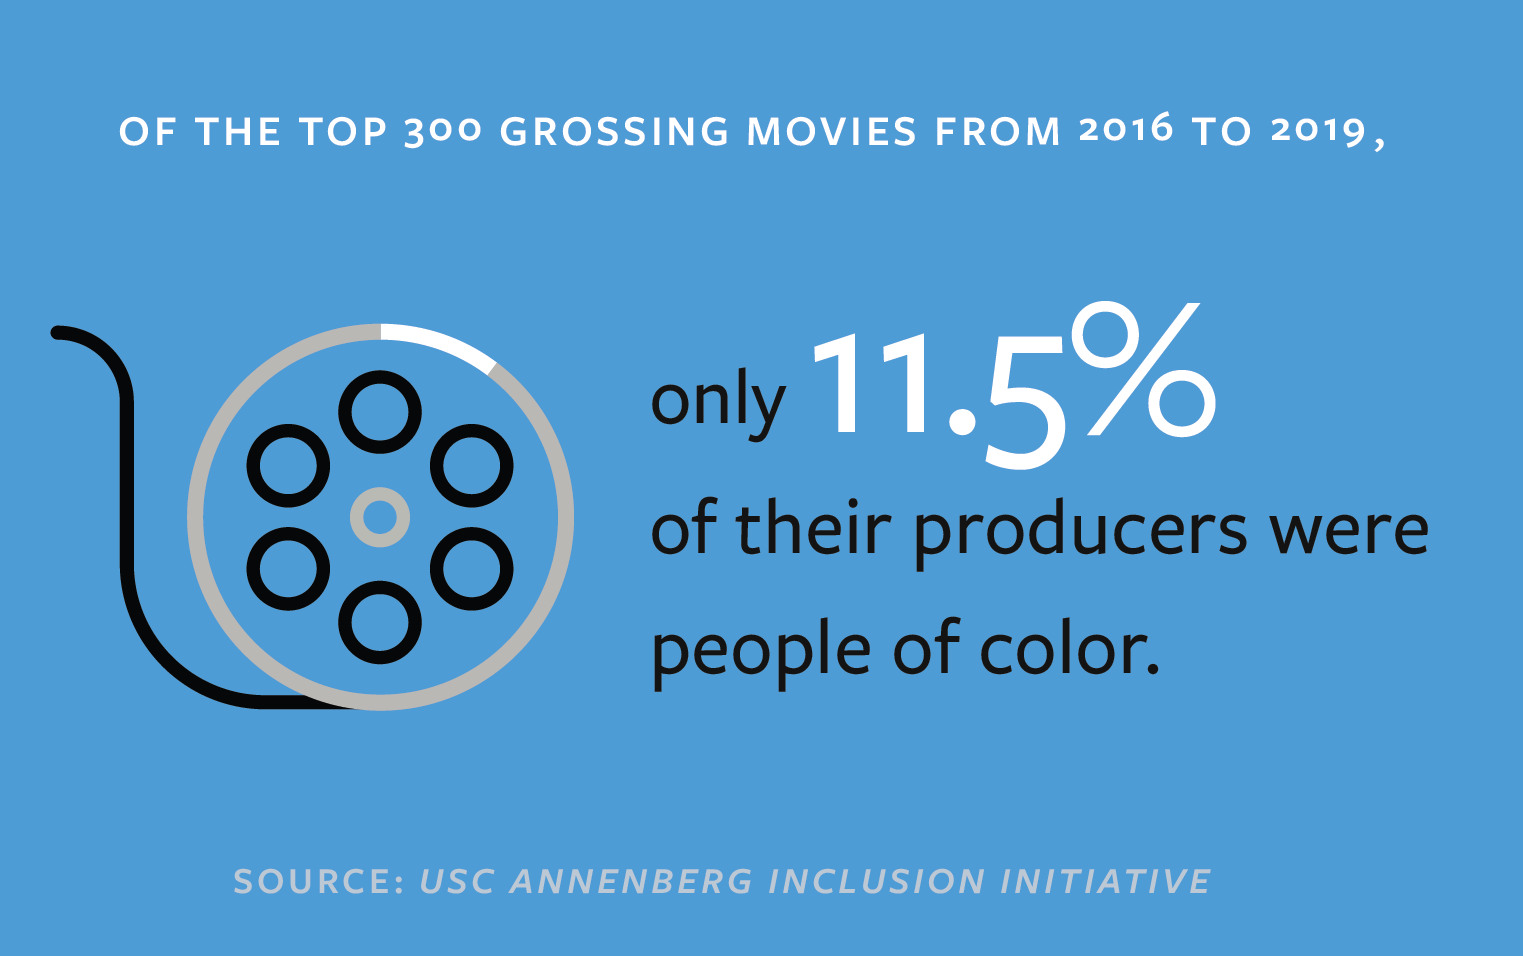 Statistic from Directors Guild of America report